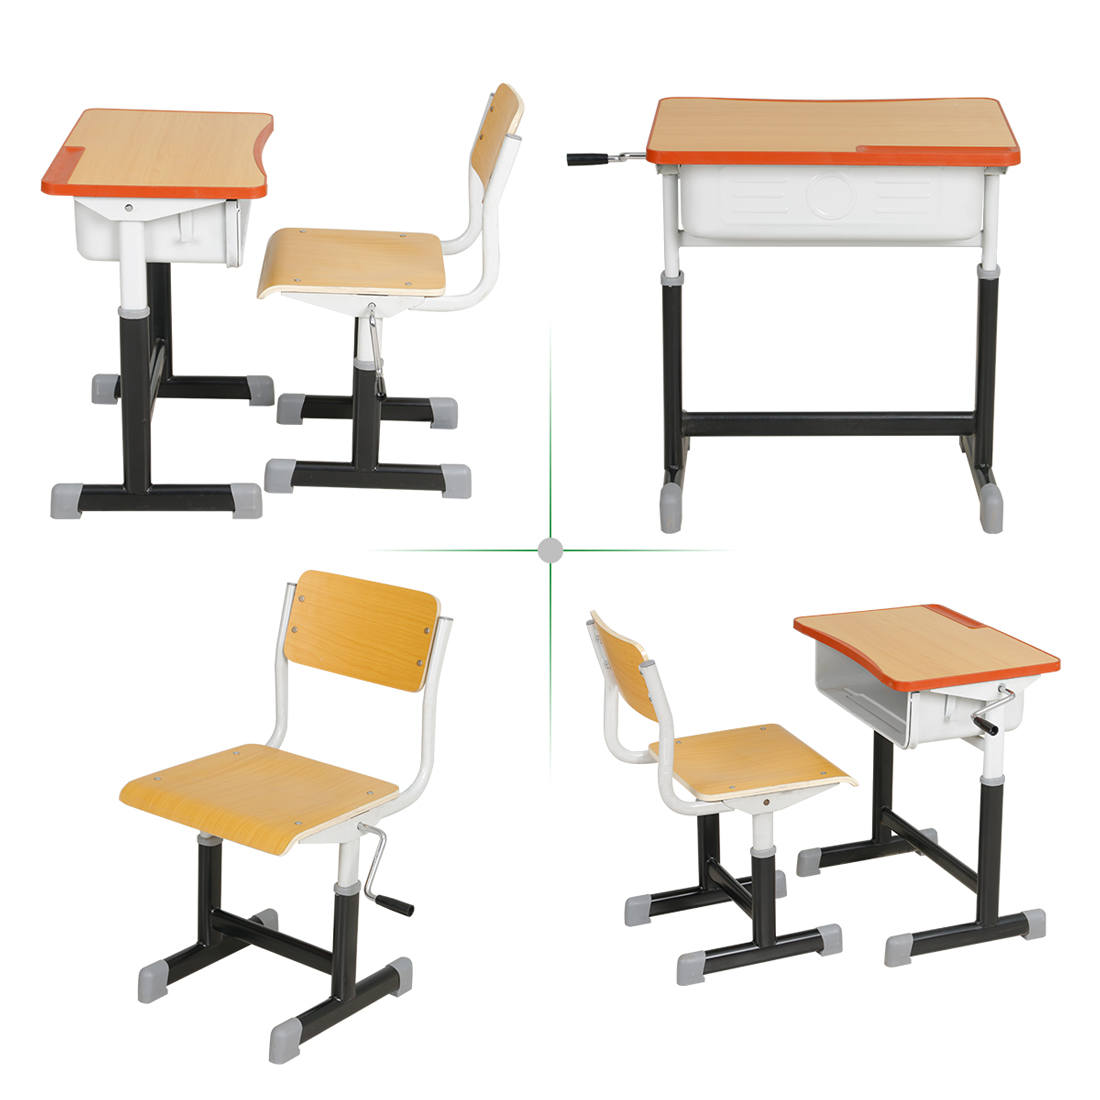 Hand Crank Lifting Desks and Chairs 1.jpg